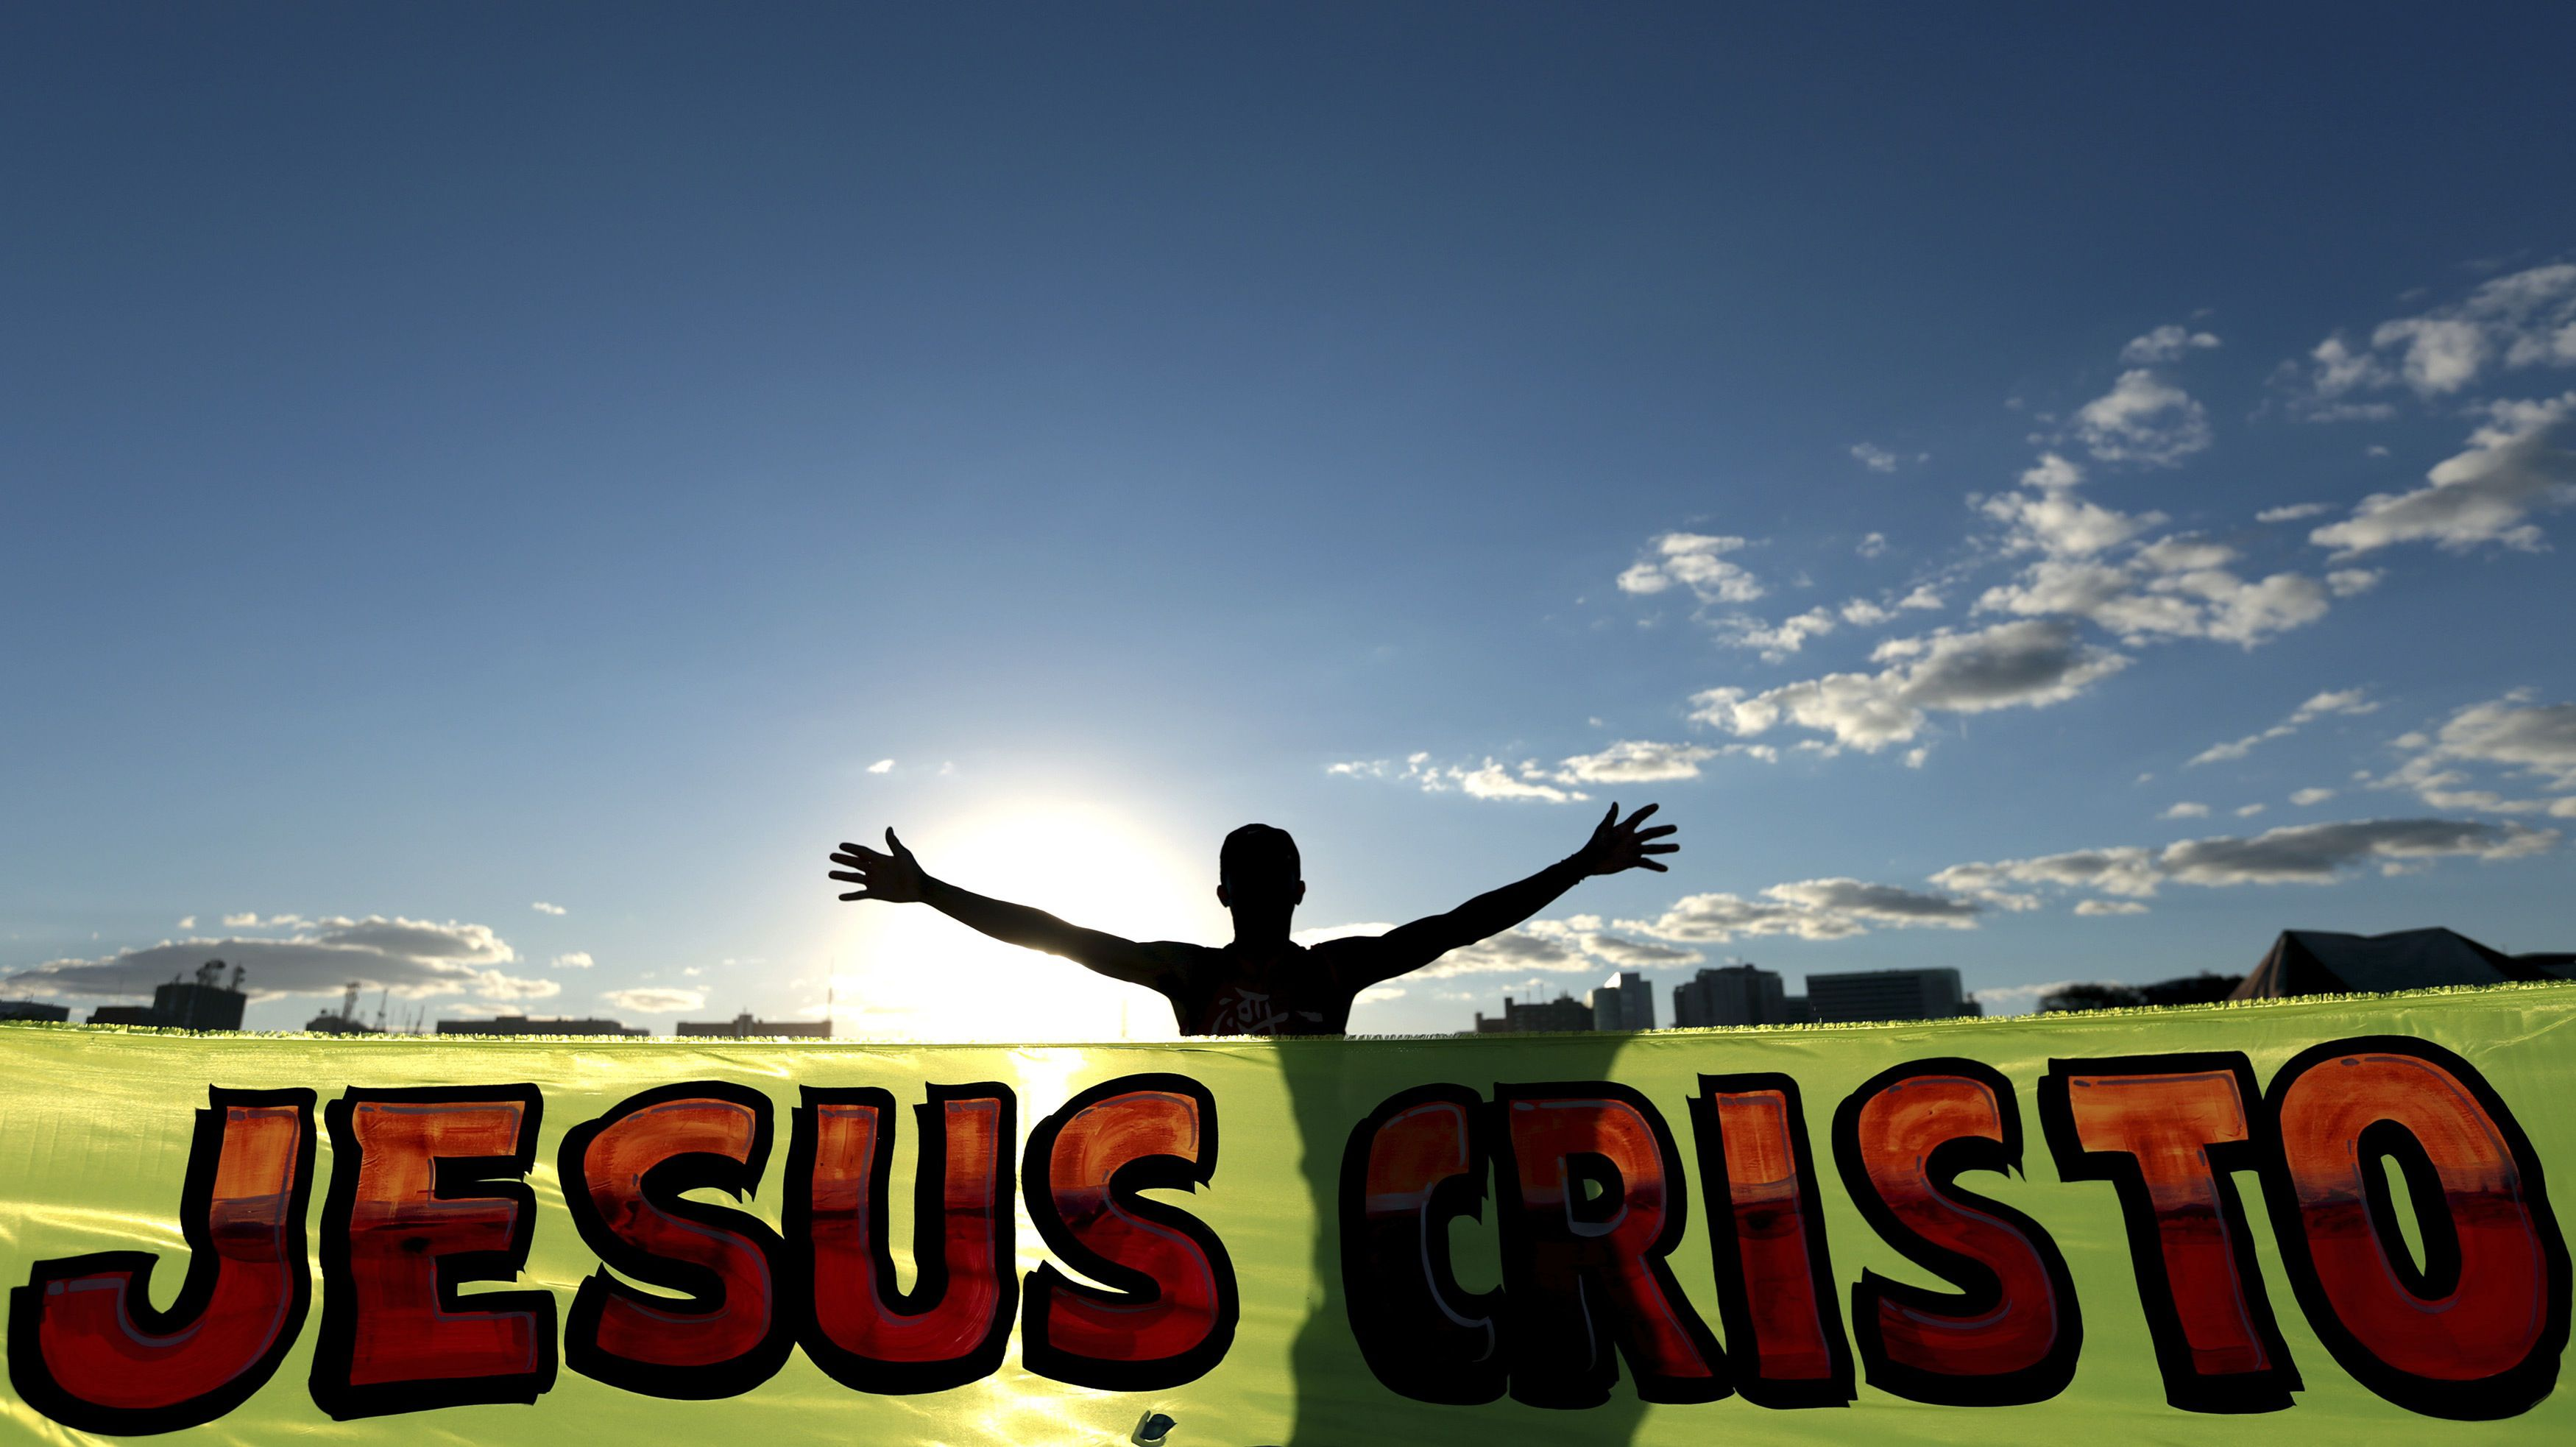 """An evangelical Christian is pictured as they march during the """"Jesus Parade"""" in downtown Brasilia August 14, 2014. Brazil's increasingly powerful evangelical Christians are tantalizingly close to electing one of their own as president next month in what would be a historic shift for the world's largest Catholic nation. Marina Silva, an environmentalist running neck and neck in polls with incumbent President Dilma Rousseff, is a Pentecostal Christian who often invokes God on the campaign trail and has said she sometimes consults the Bible for inspiration when making important political decisions. The parade unites Christians and Evangelical churches in a public expression of faith, praising and worshipping Jesus Christ. The banner reads """"Jesus Christ"""". Picture taken August 14, 2014. To match Insight BRAZIL-ELECTION/EVANGELICALS REUTERS/Joedson Alves (BRAZIL - Tags: POLITICS ELECTIONS RELIGION TPX IMAGES OF THE DAY) - RTR481PR"""